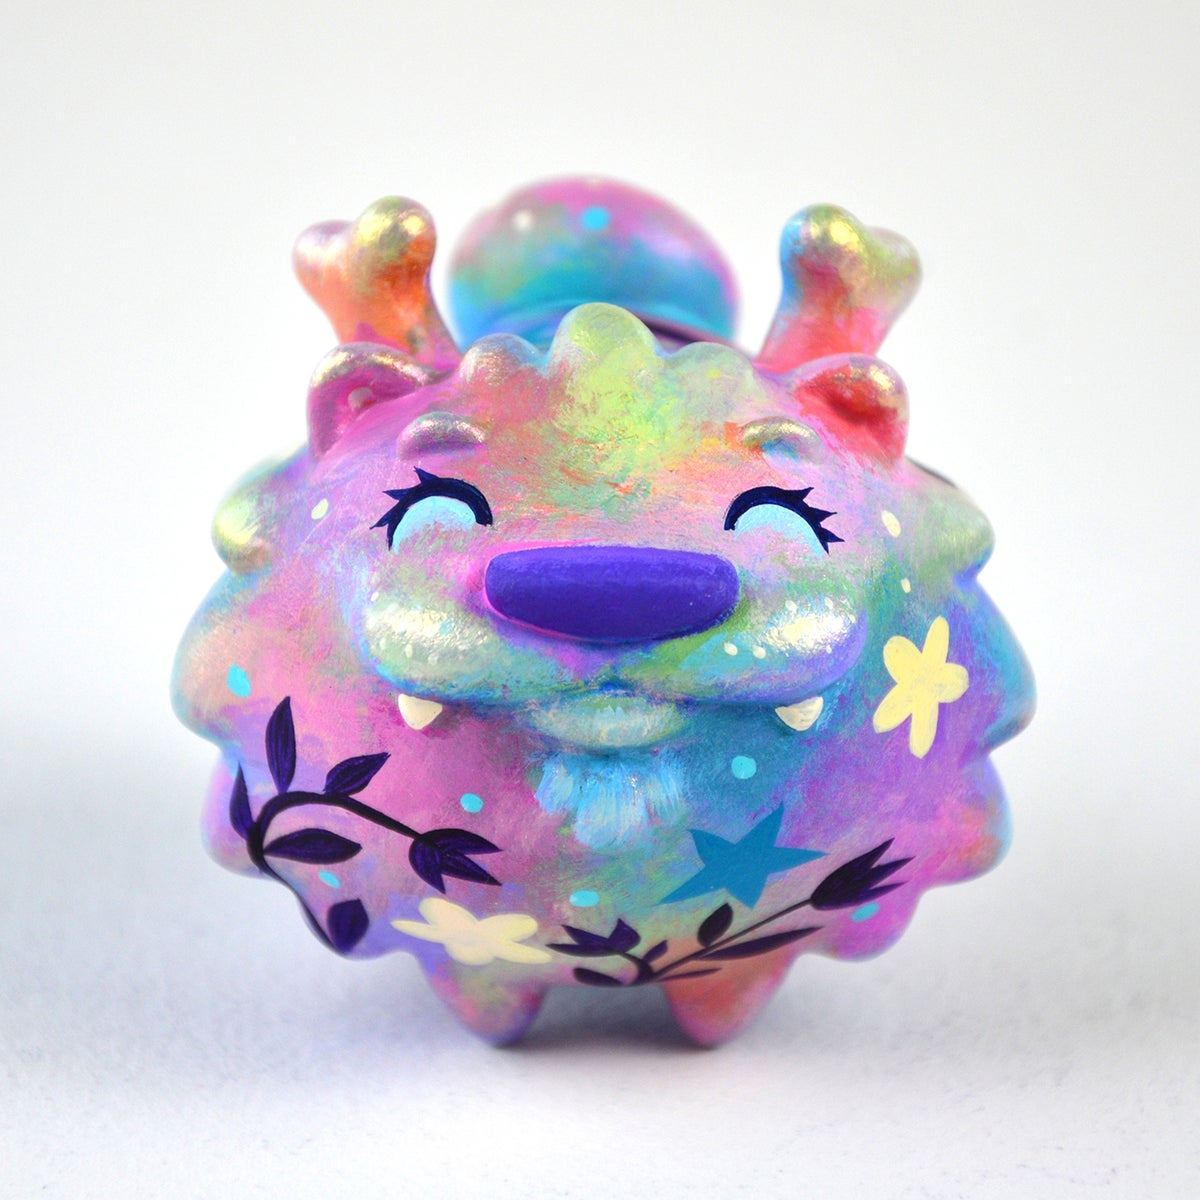 Midnight & Sunset custom figures by Jeremiah Ketner | DCon 2020 Exclusive